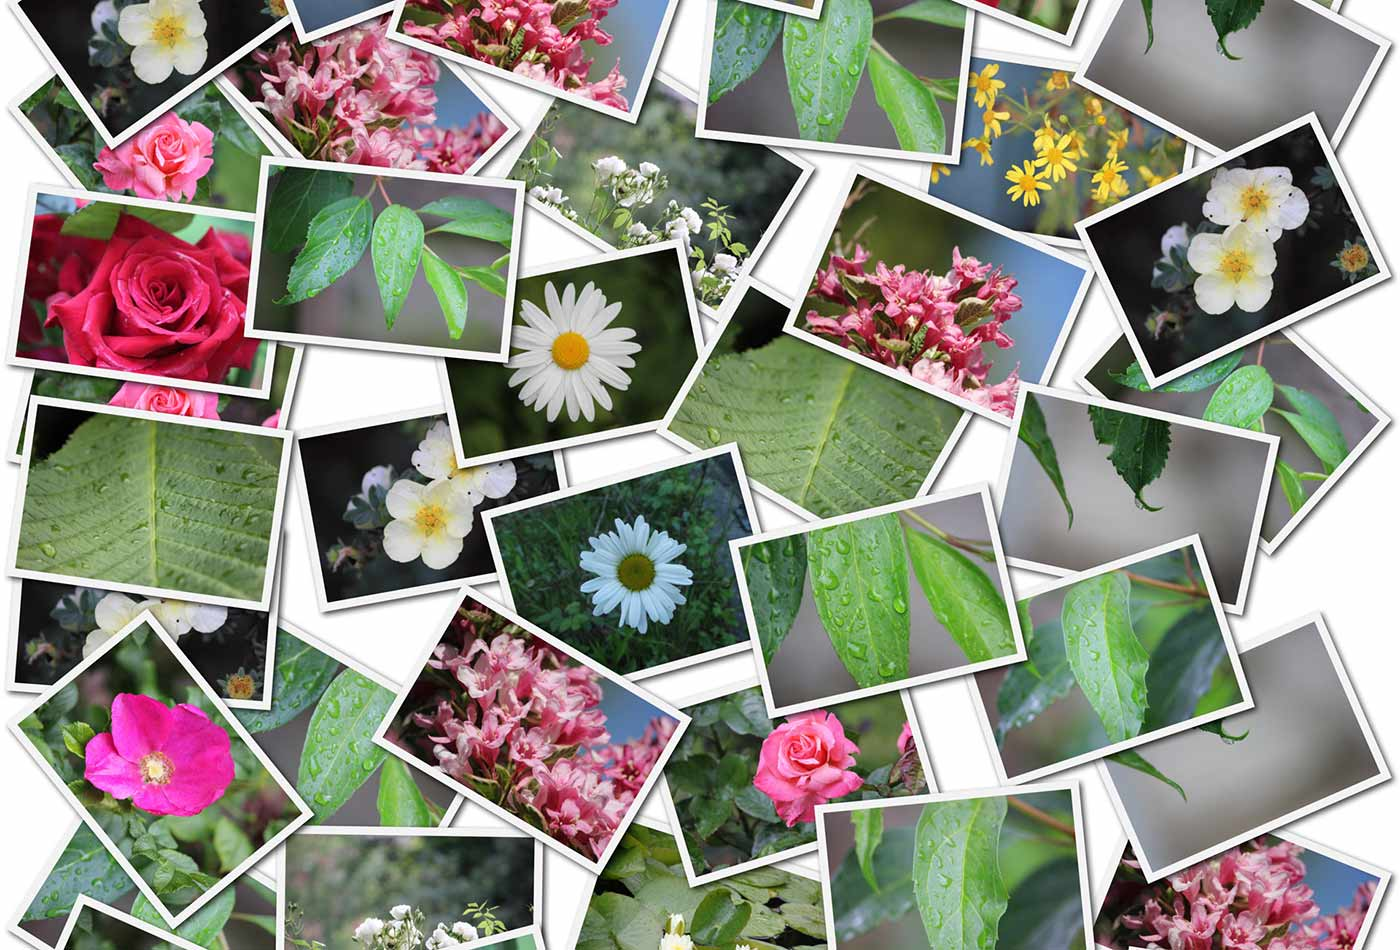 Flower and leaf photo collage.